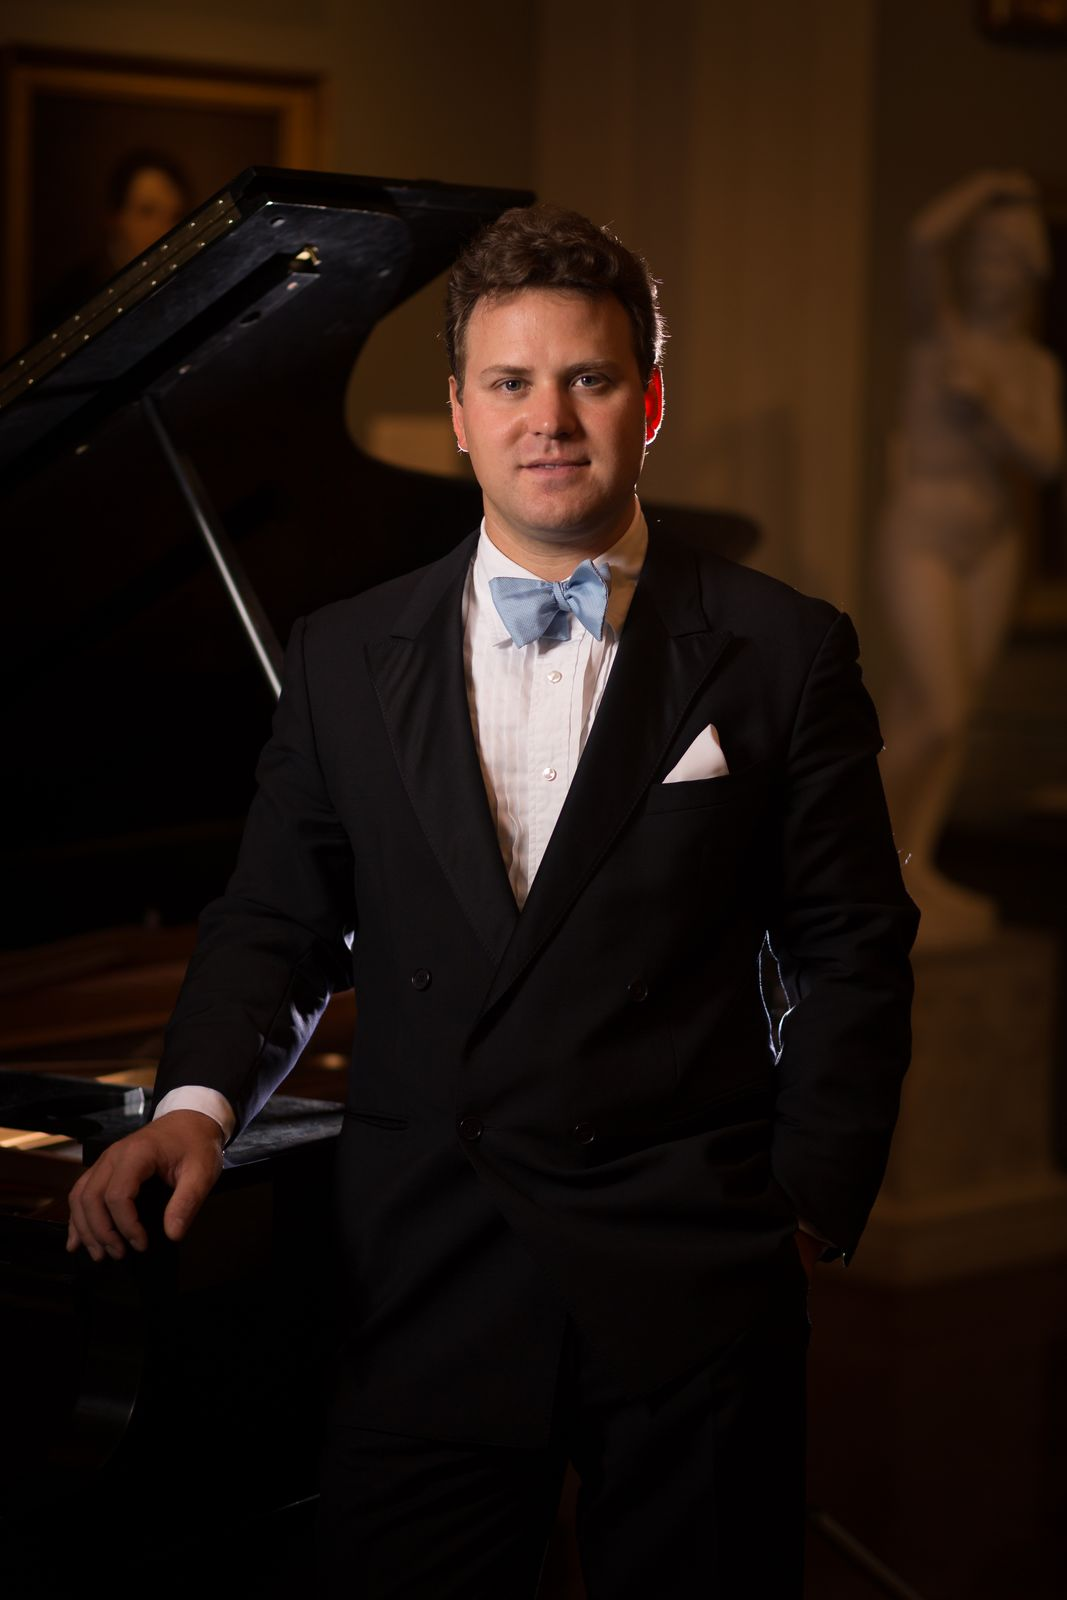 Piano Concert with Clemens Teufel - Rapture and Reverie